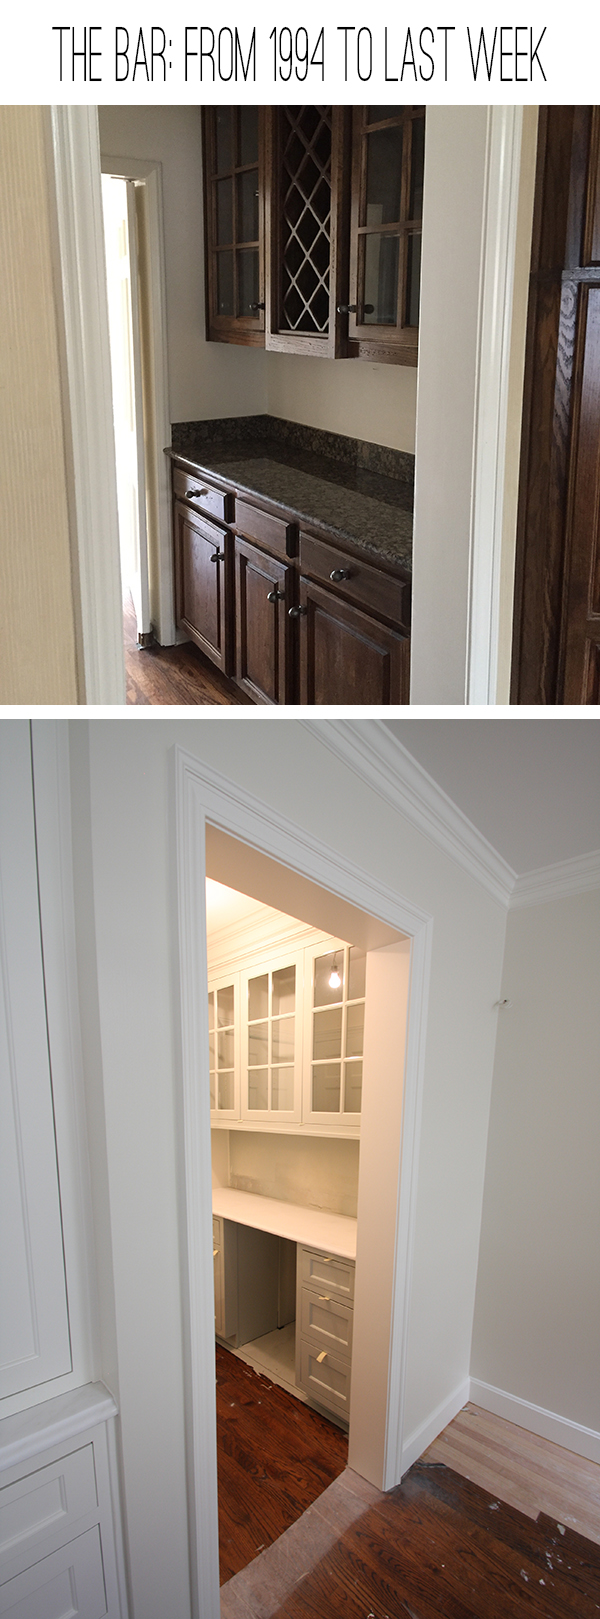 hallway before before and after